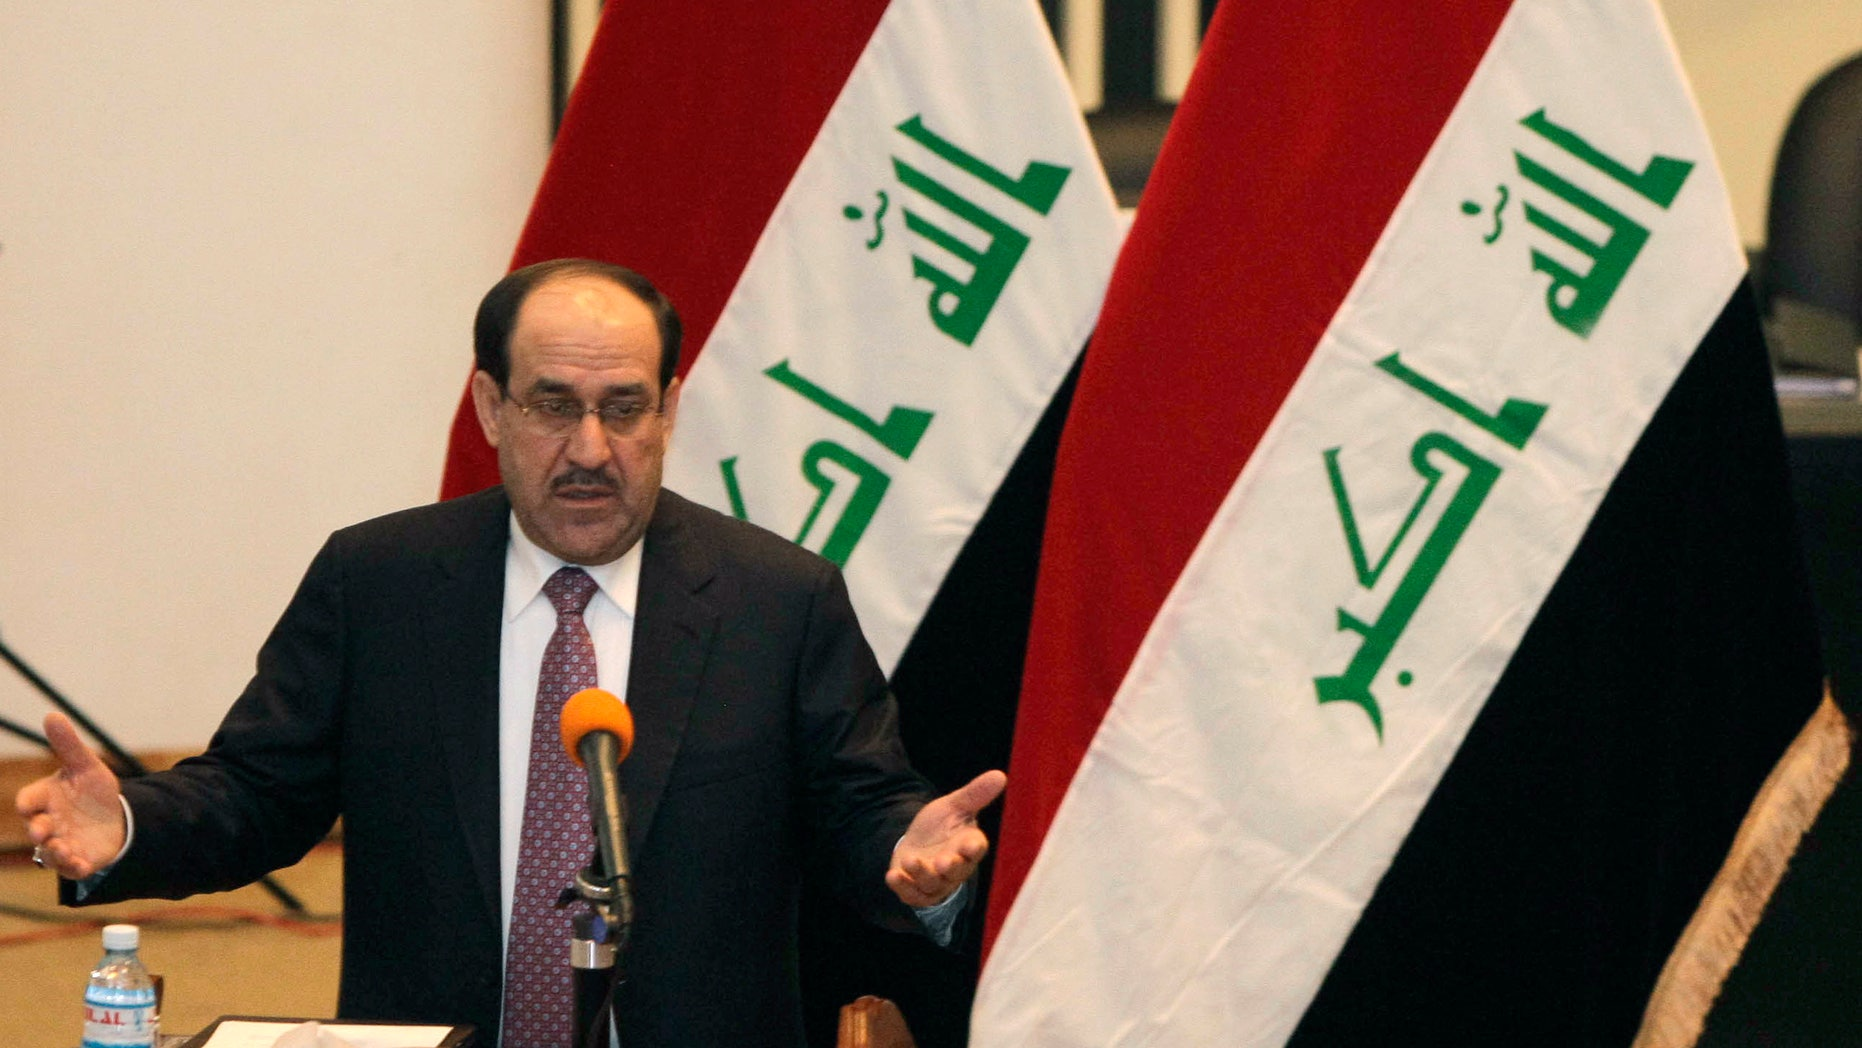 Dec. 21: Iraq's Prime Minister Nouri al-Maliki speaks to the Iraqi lawmakers before submitting his new government for approval in Baghdad, Iraq.